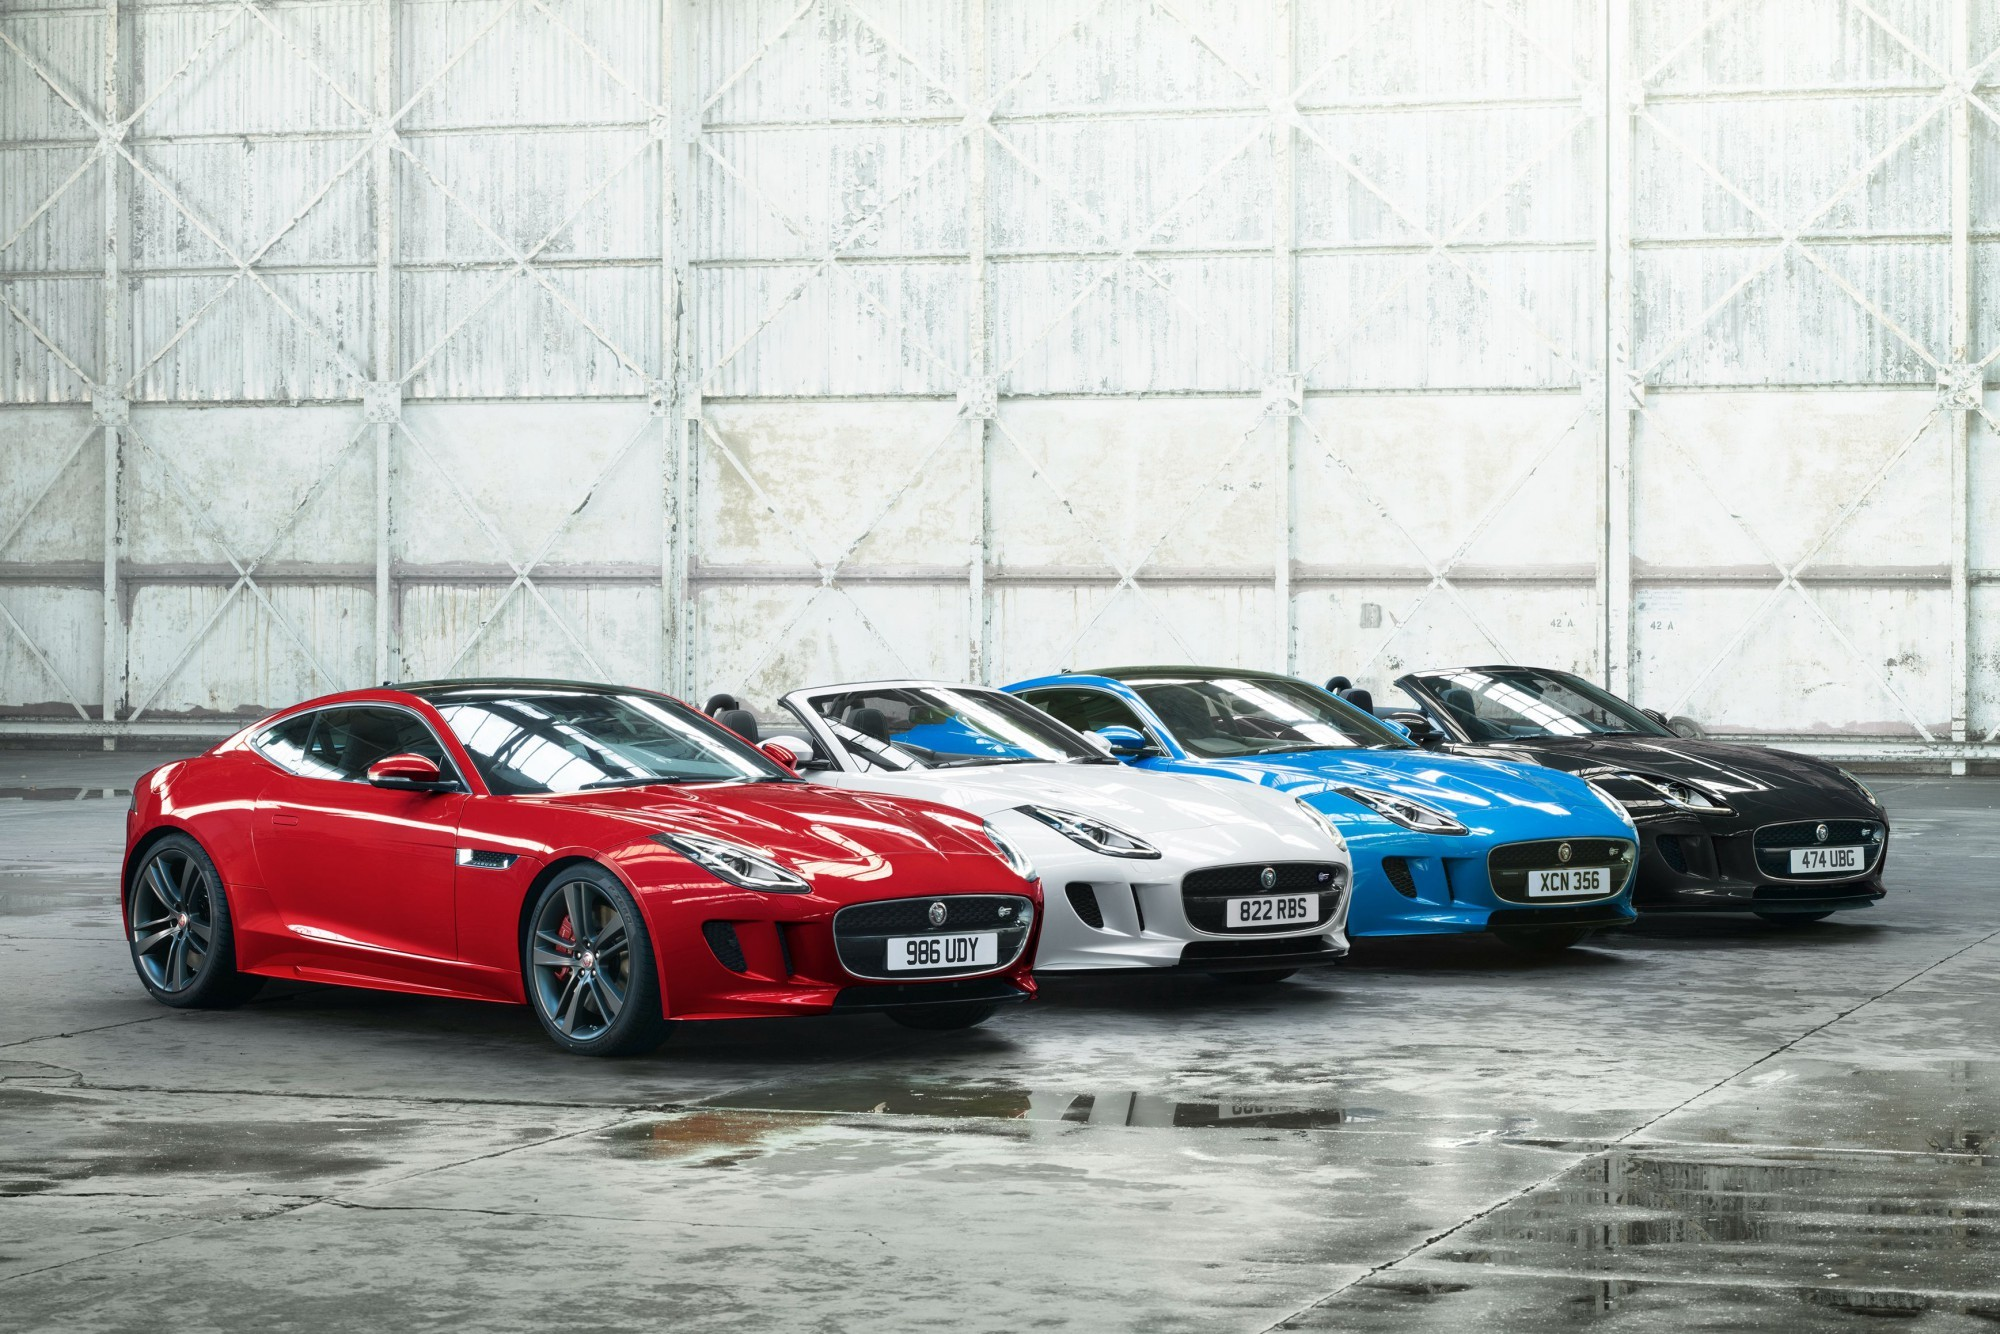 jaguar_f-type_14